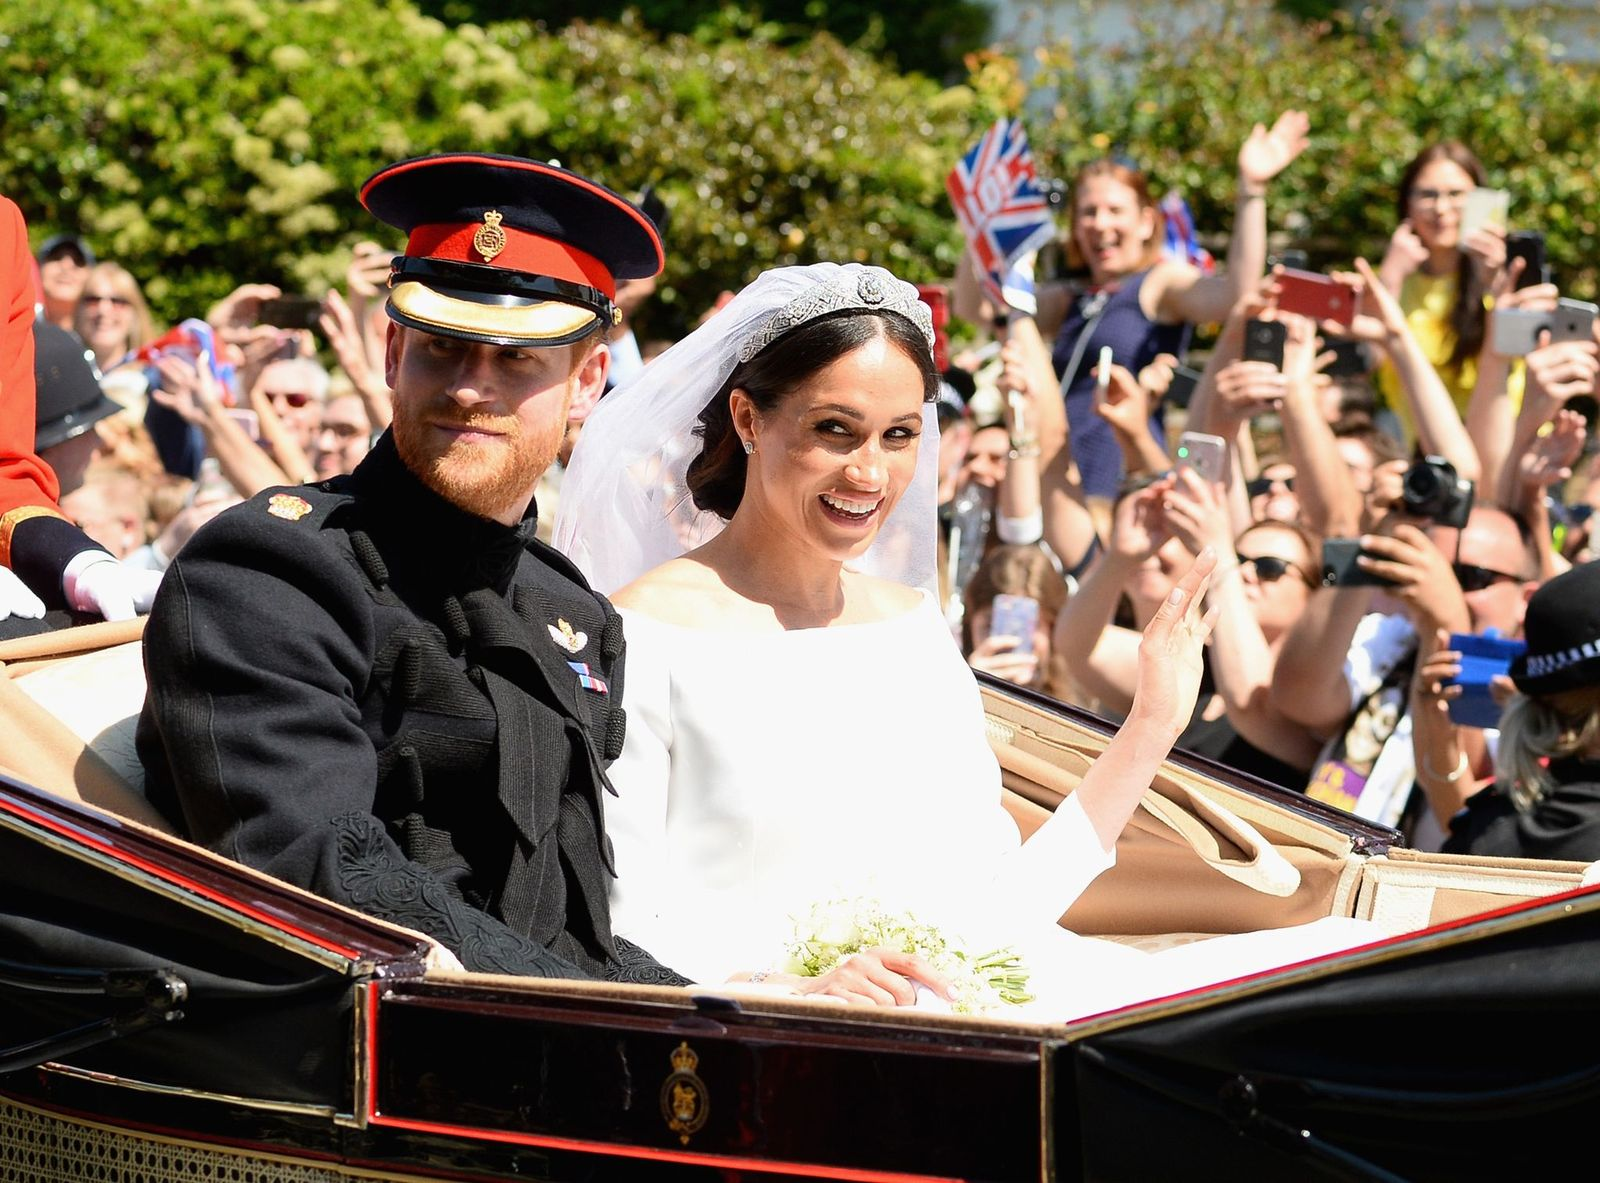 Prince Harry and Meghan Markle after getting married at St Georges Chapel on May 19, 2018 in Windsor, England | Photo: Getty Images